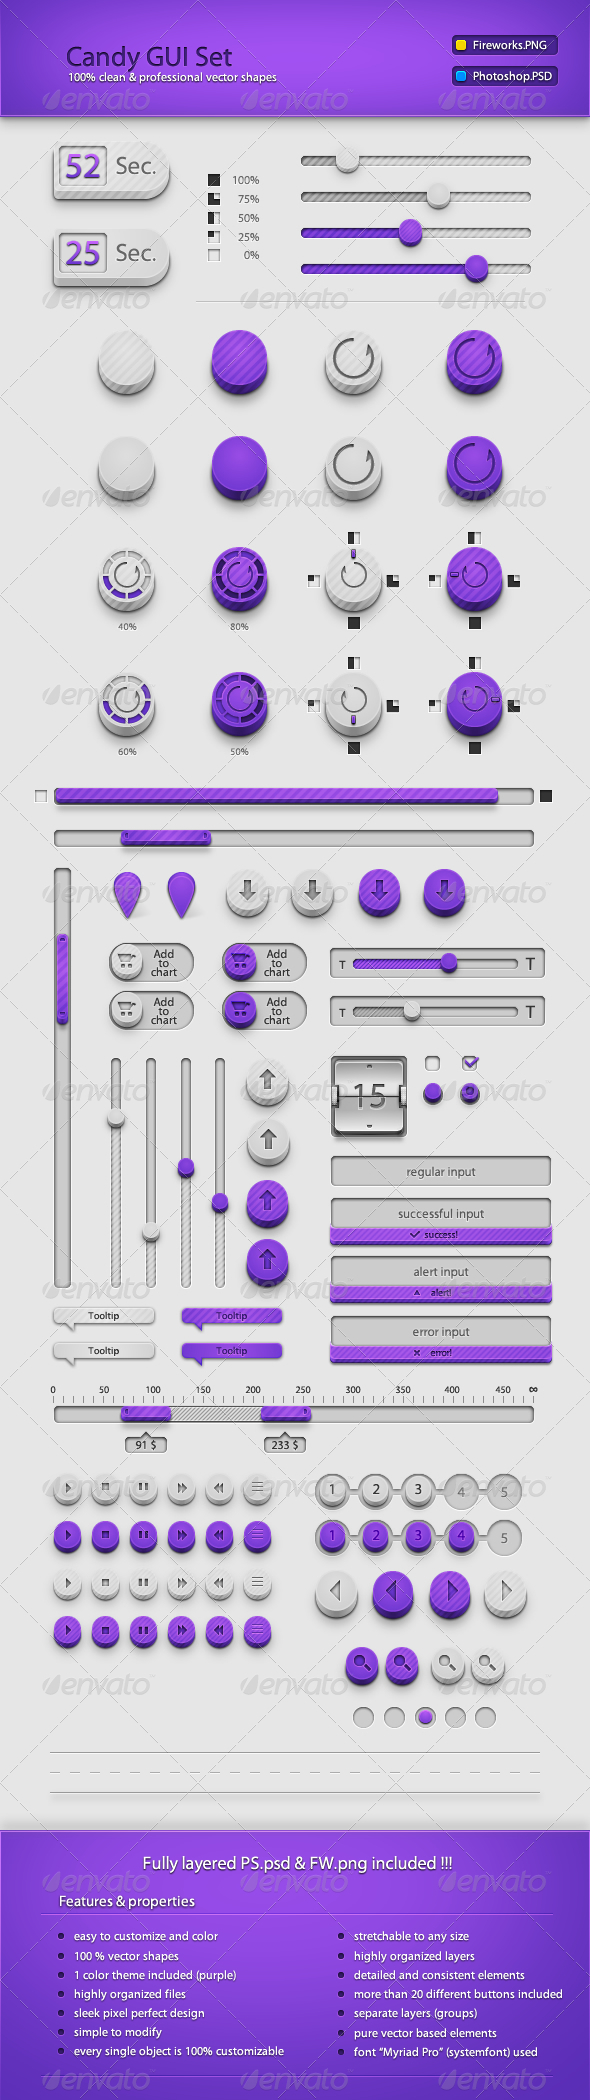 Candy GUI Set by cyrixDesign